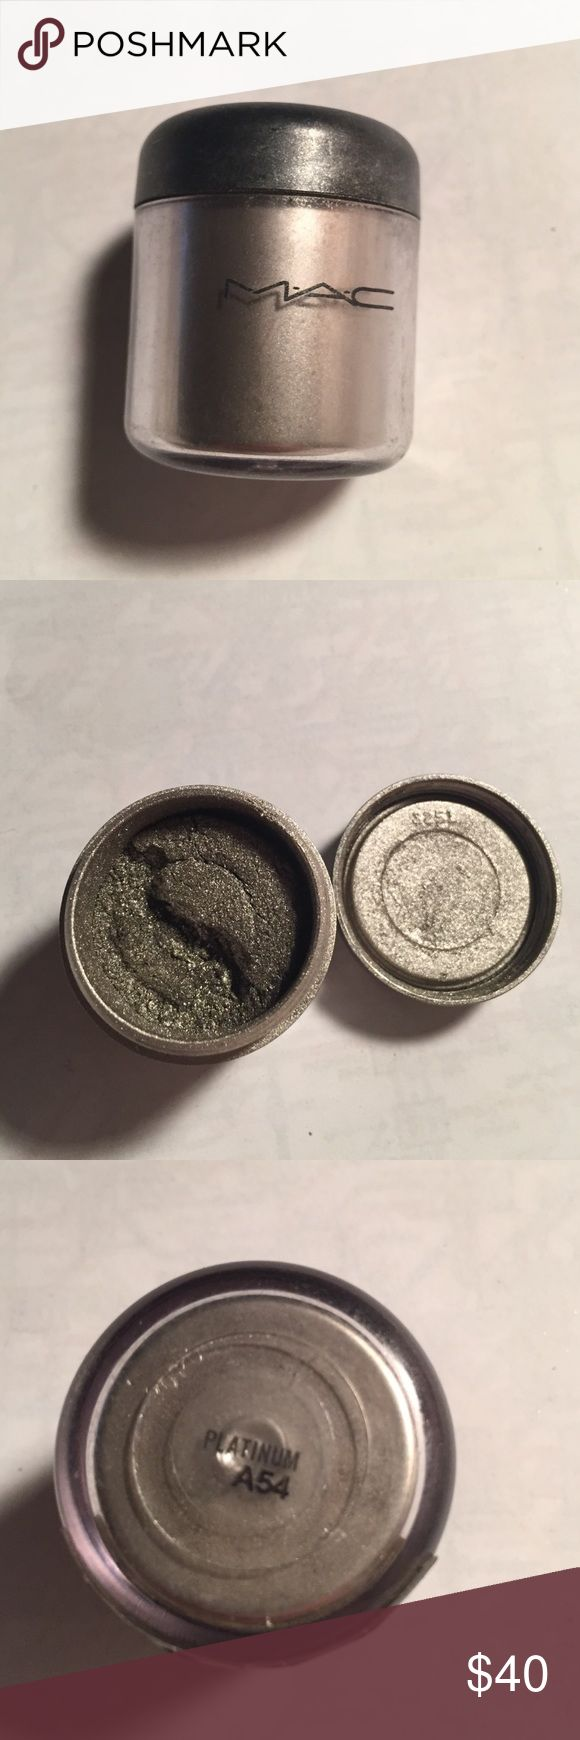 MAC Pro Pigment in Platinum Full sized Mac Pro Pigment in Platinum. 1/4tsp has been removed. MAC Cosmetics Makeup Eyeshadow